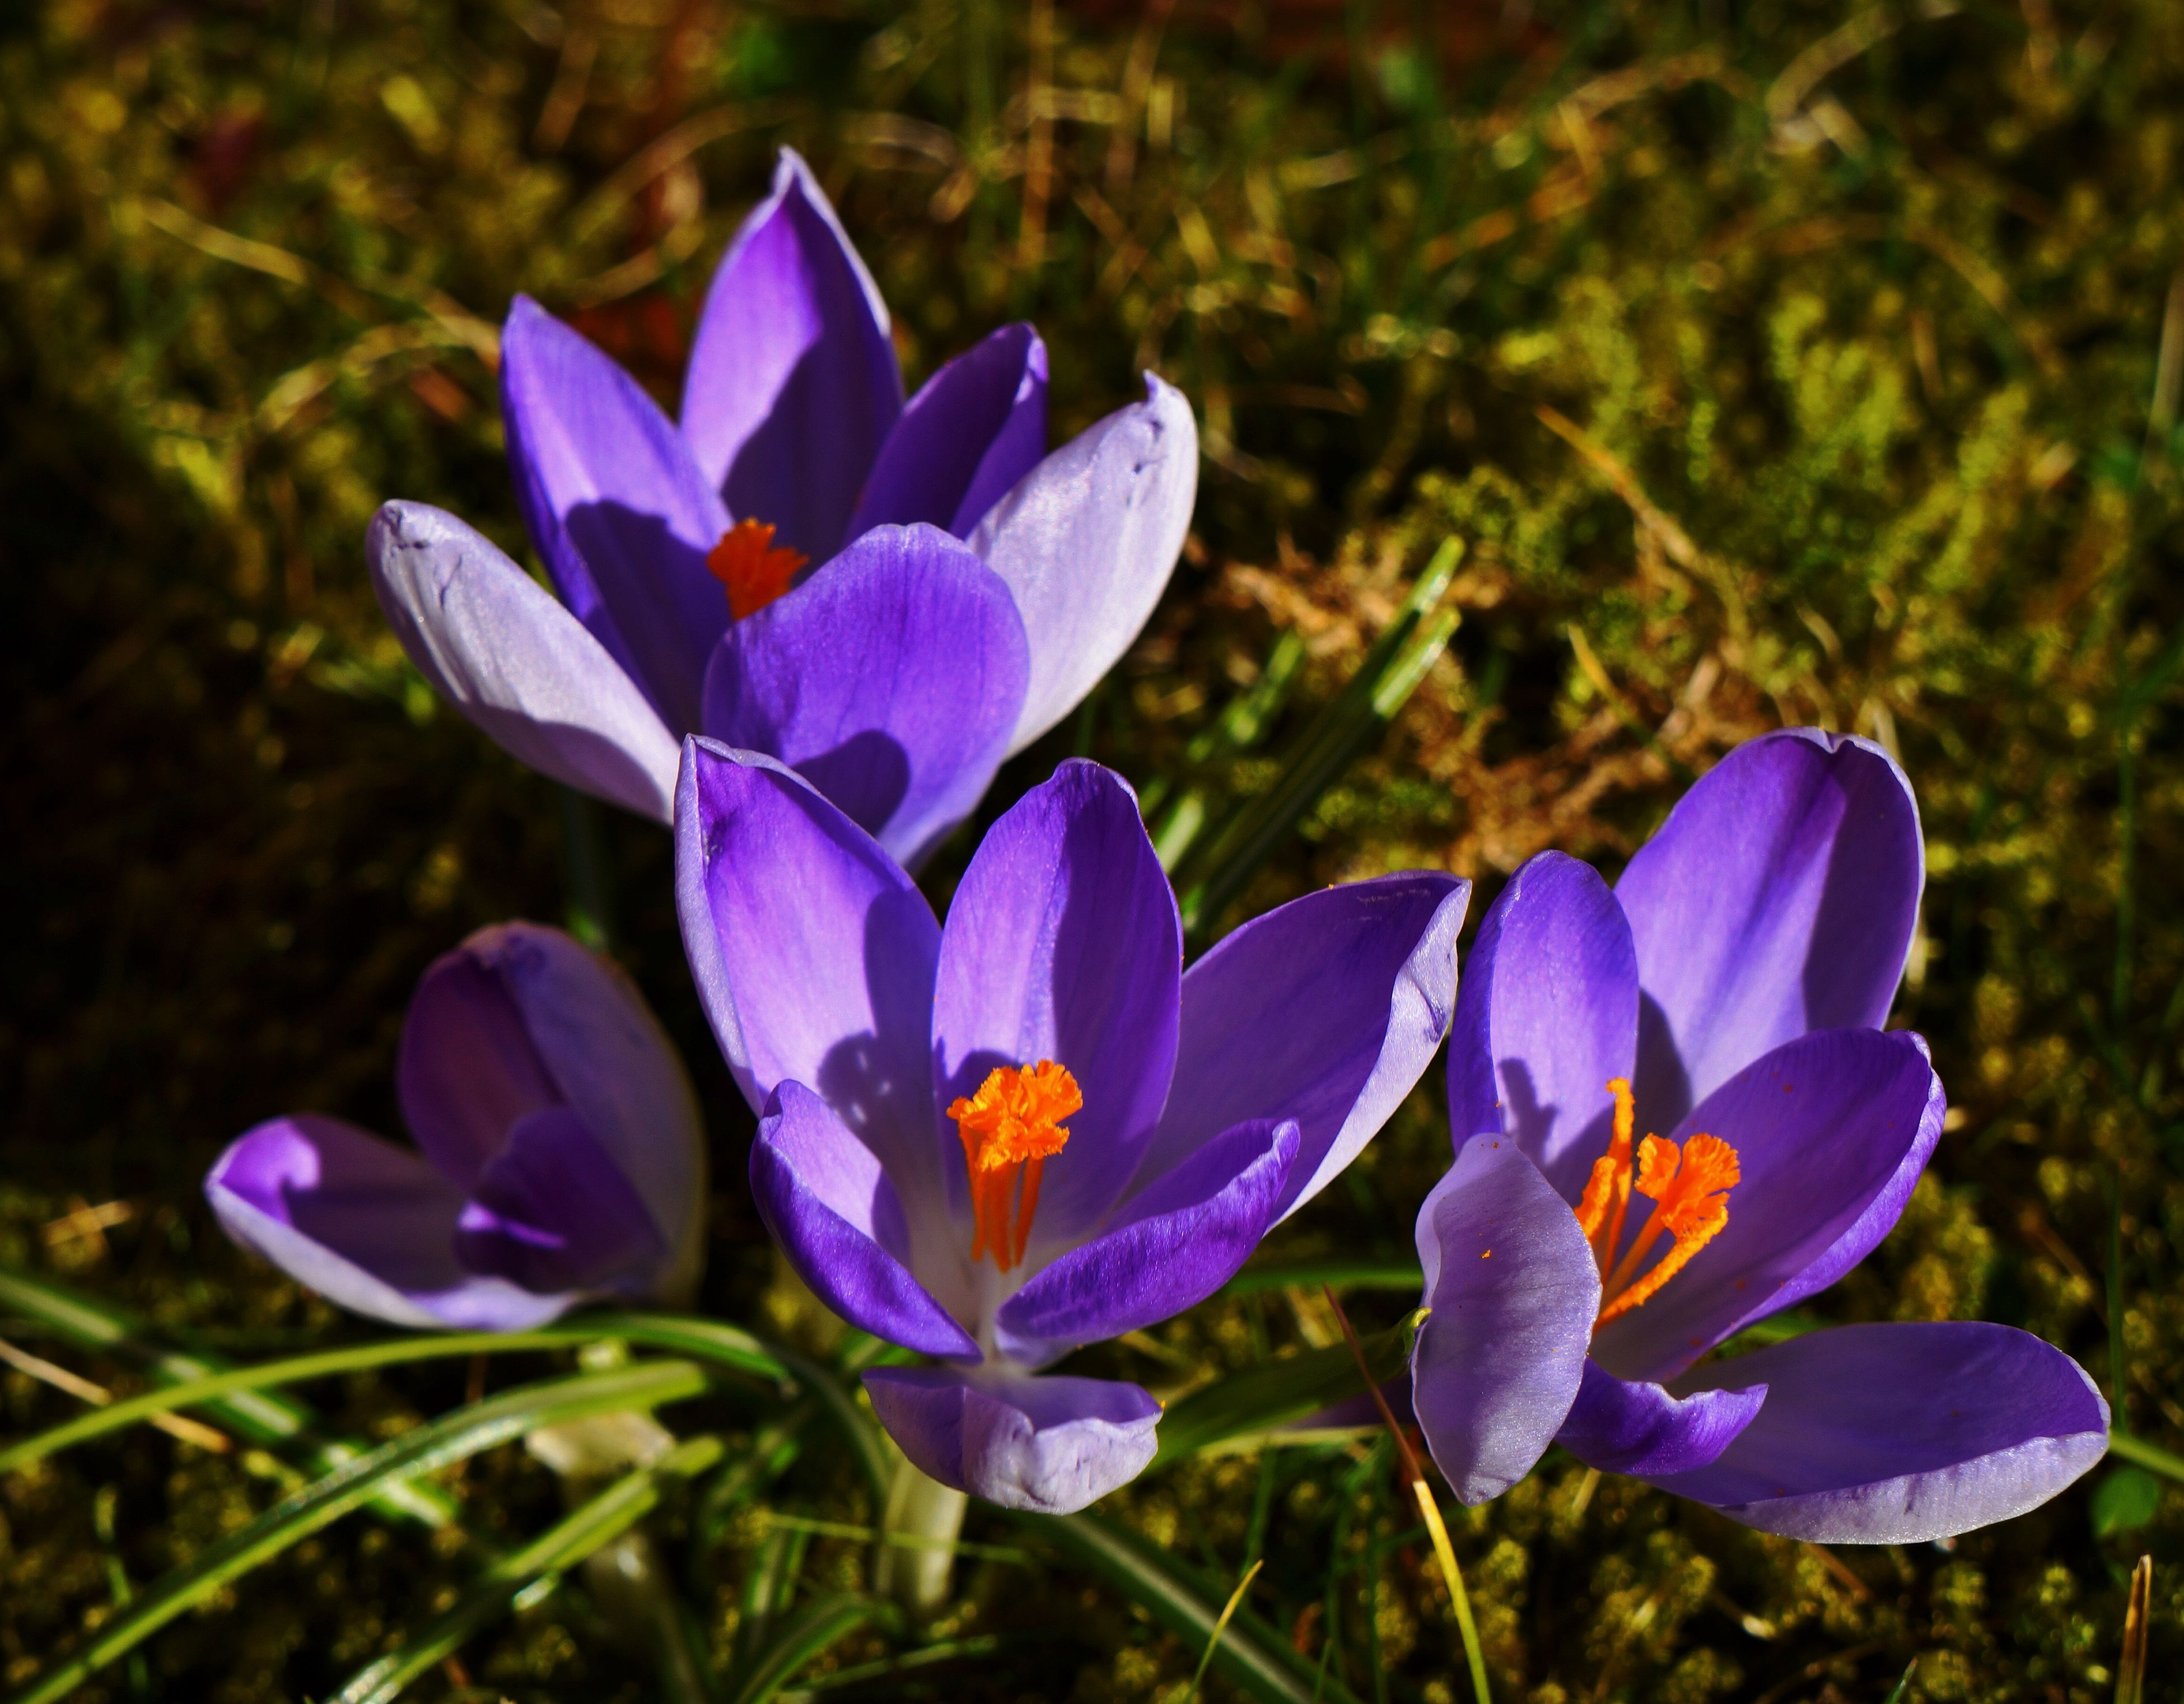 flower, petal, purple, freshness, fragility, flower head, growth, beauty in nature, blooming, close-up, nature, field, focus on foreground, plant, crocus, in bloom, blue, stem, blossom, pollen